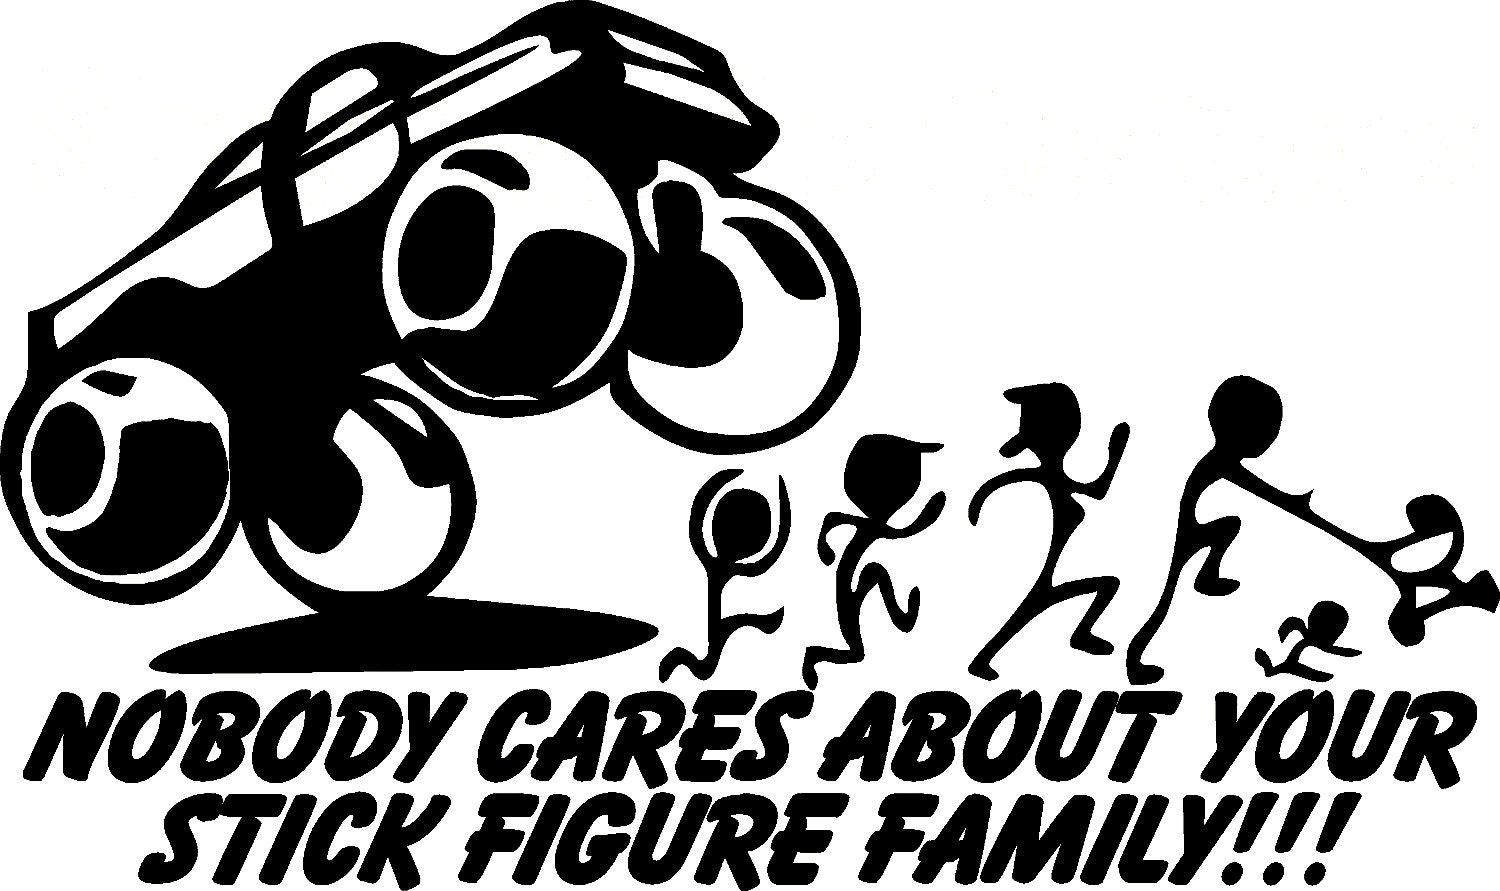 AntiStick Figure Family Decal Sticker Funny Bumper Sticker - Family decal stickers for cars